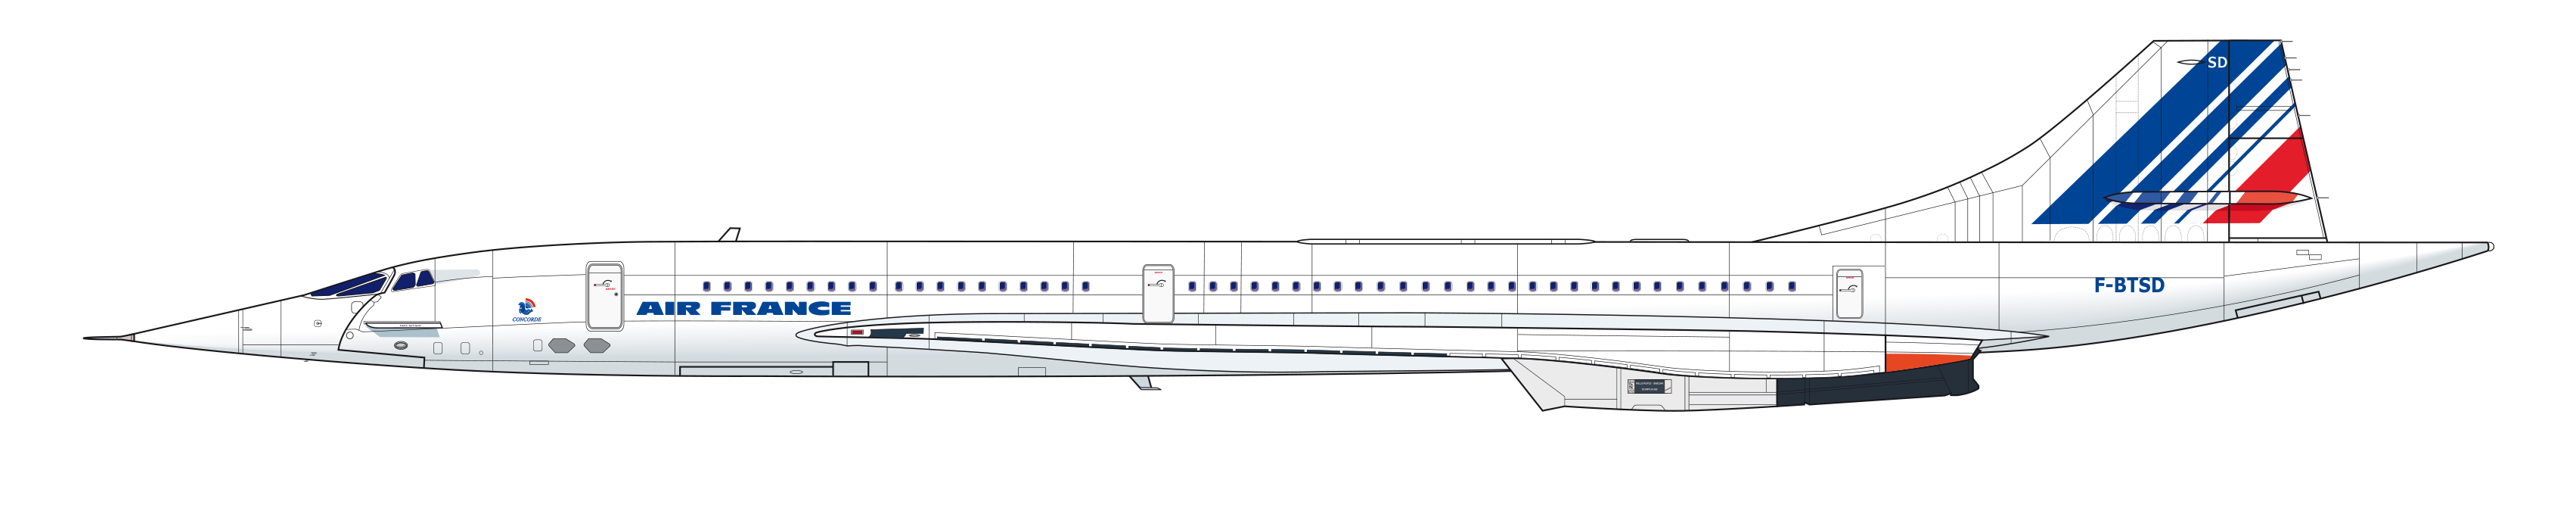 Concorde_F-BTSD_coul_vers_1990.png